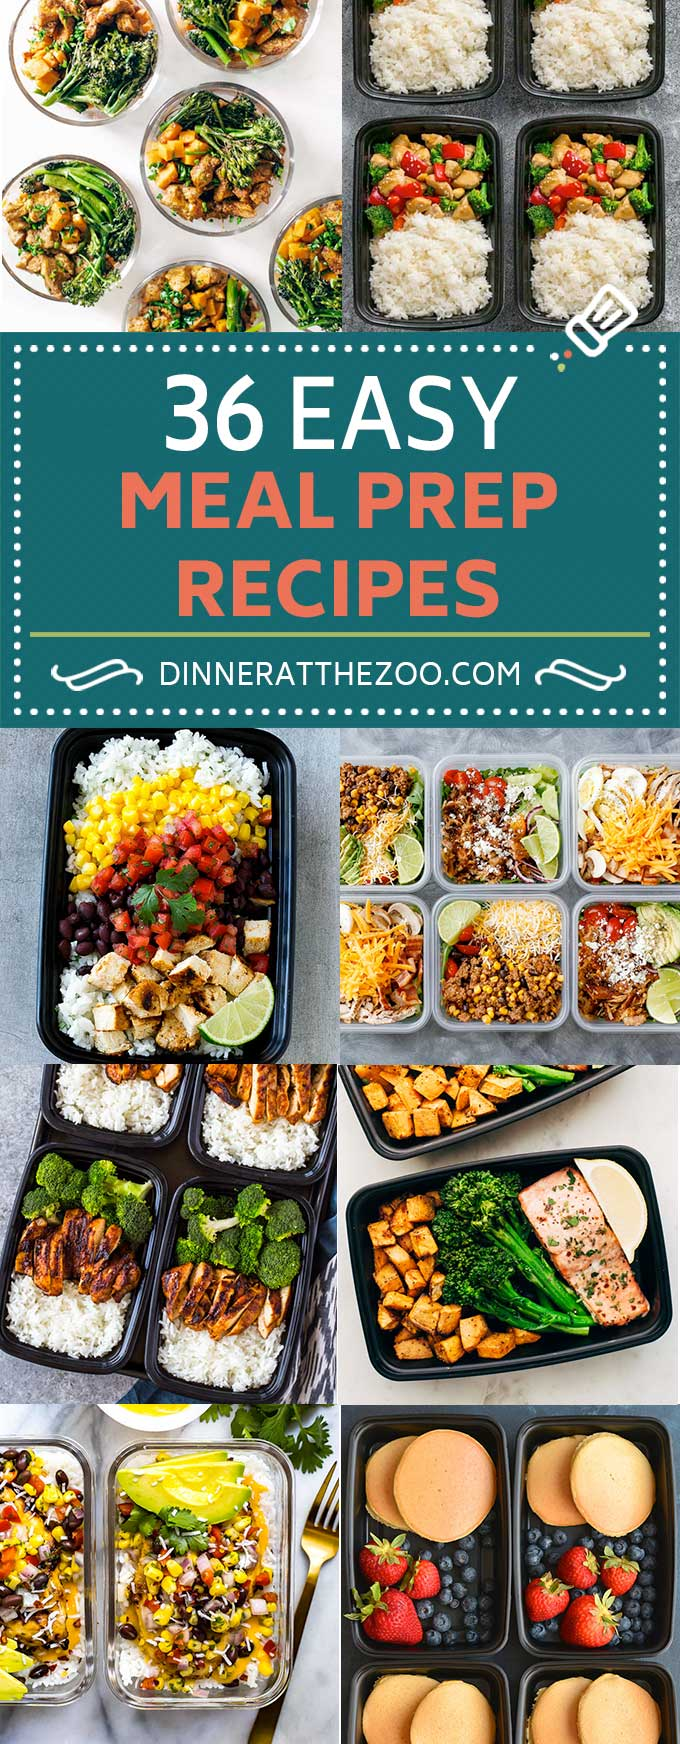 Tips to Create Dinner Meal Prep Ideas For Beginners